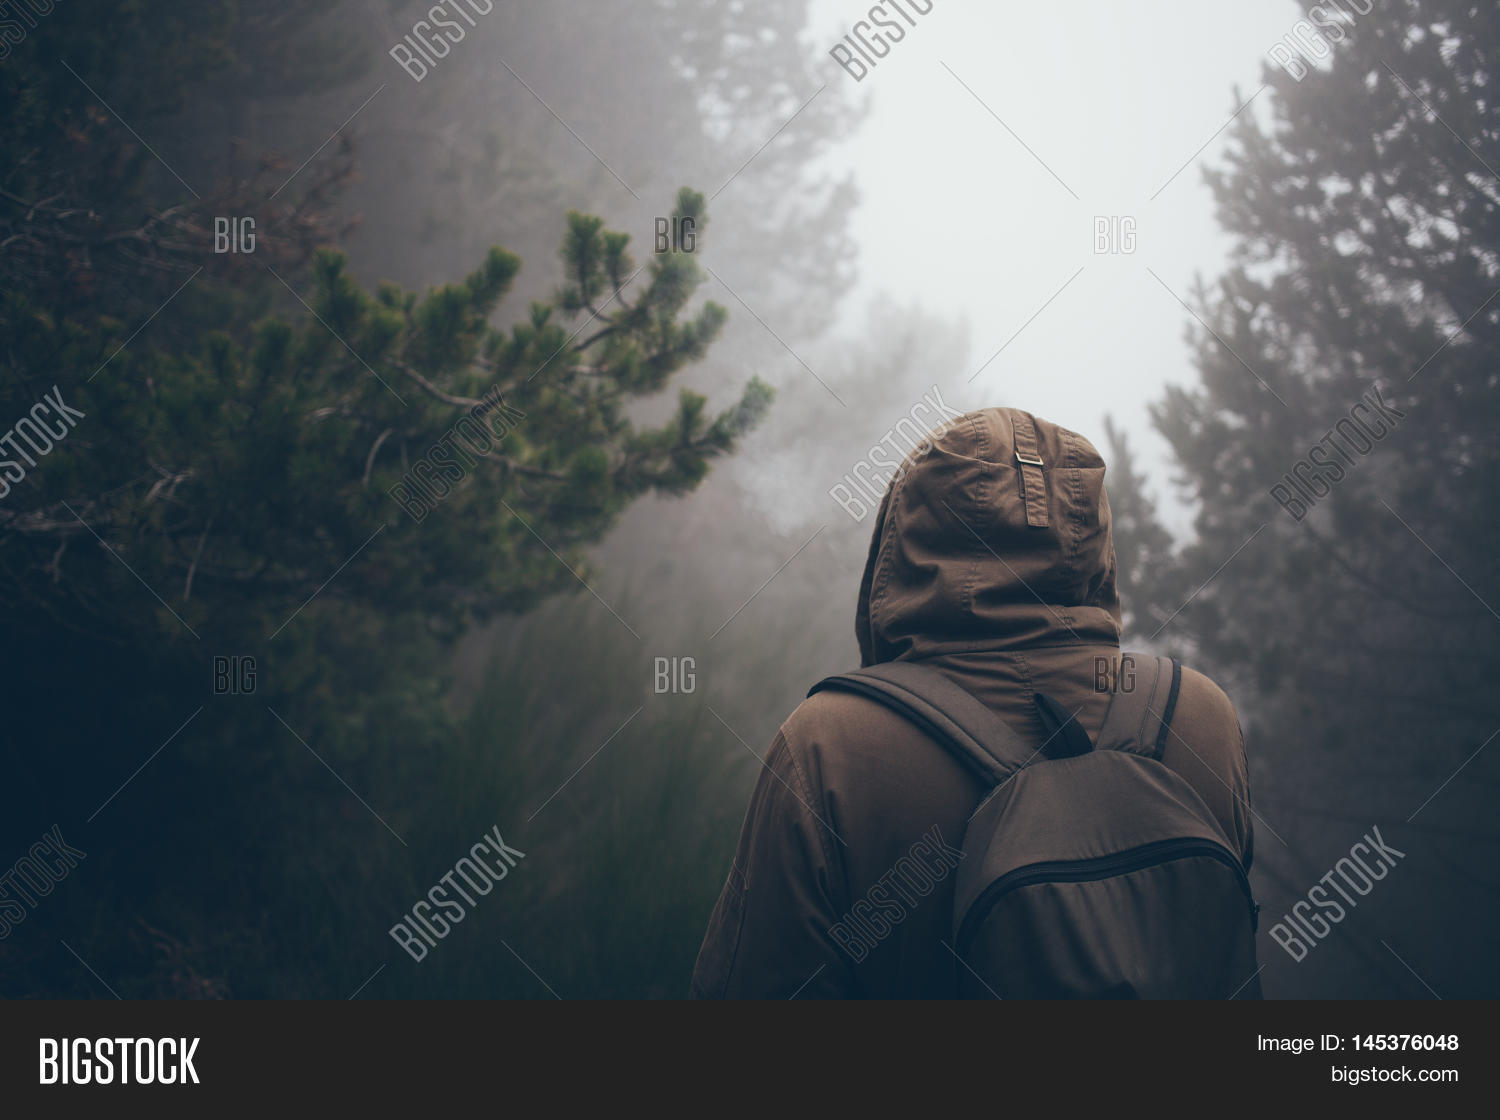 Man Walking Foggy Image Photo Free Trial Bigstock